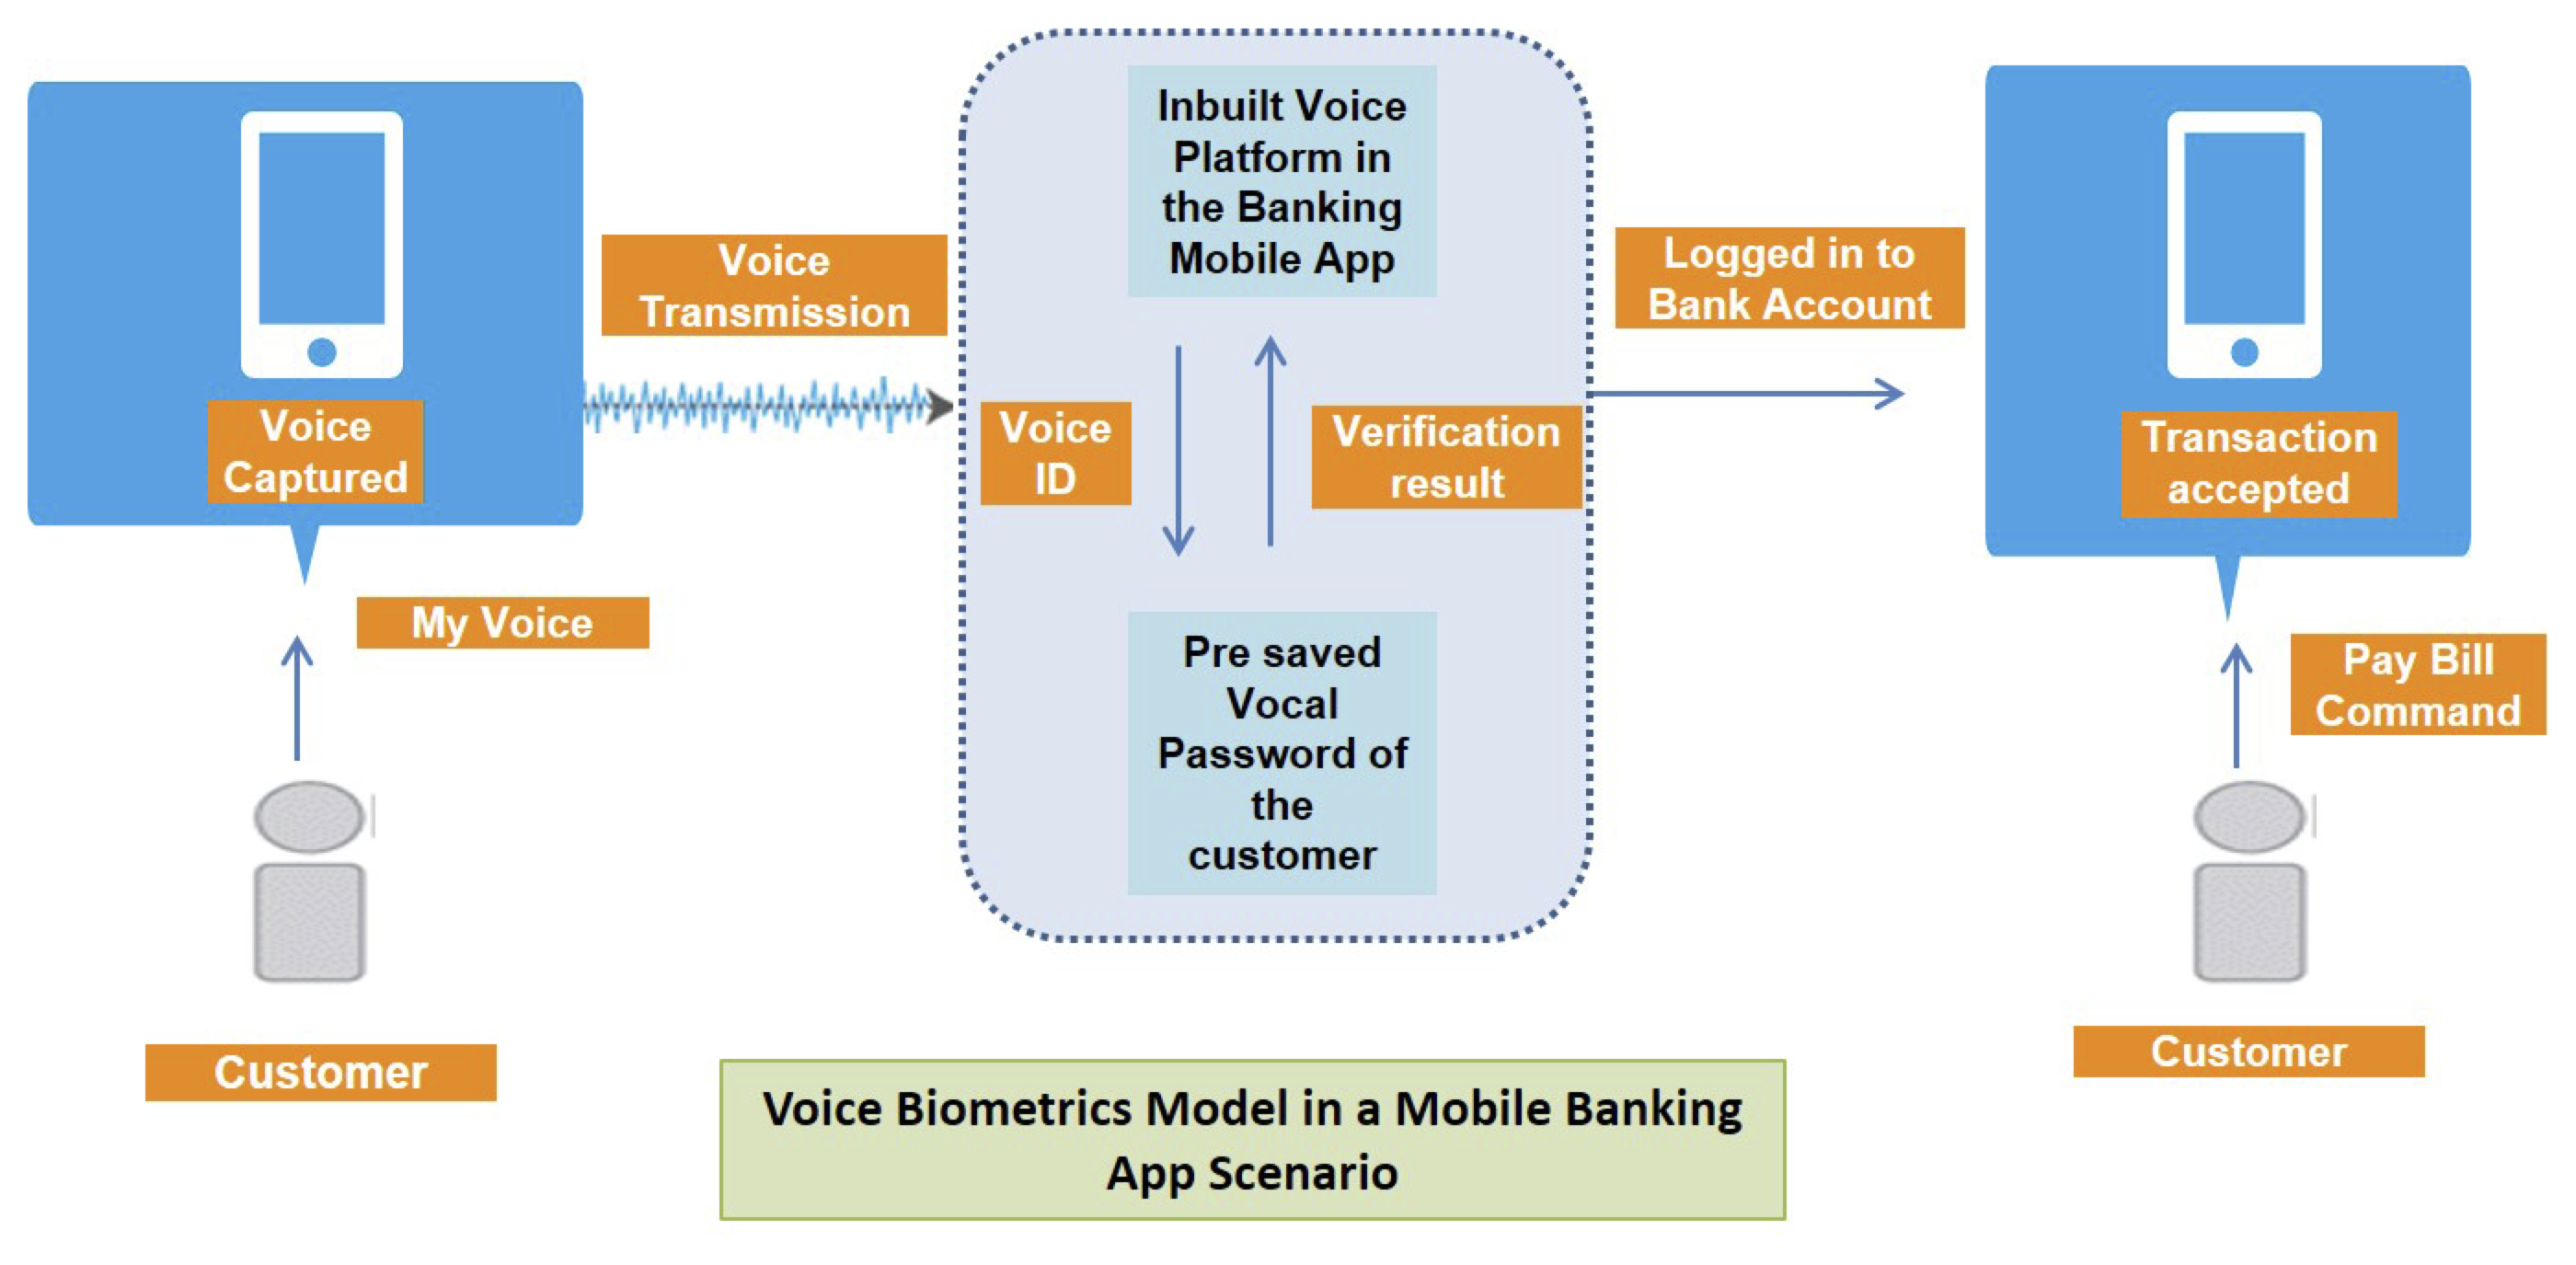 The New Mobile Banking Password Your Voice Global